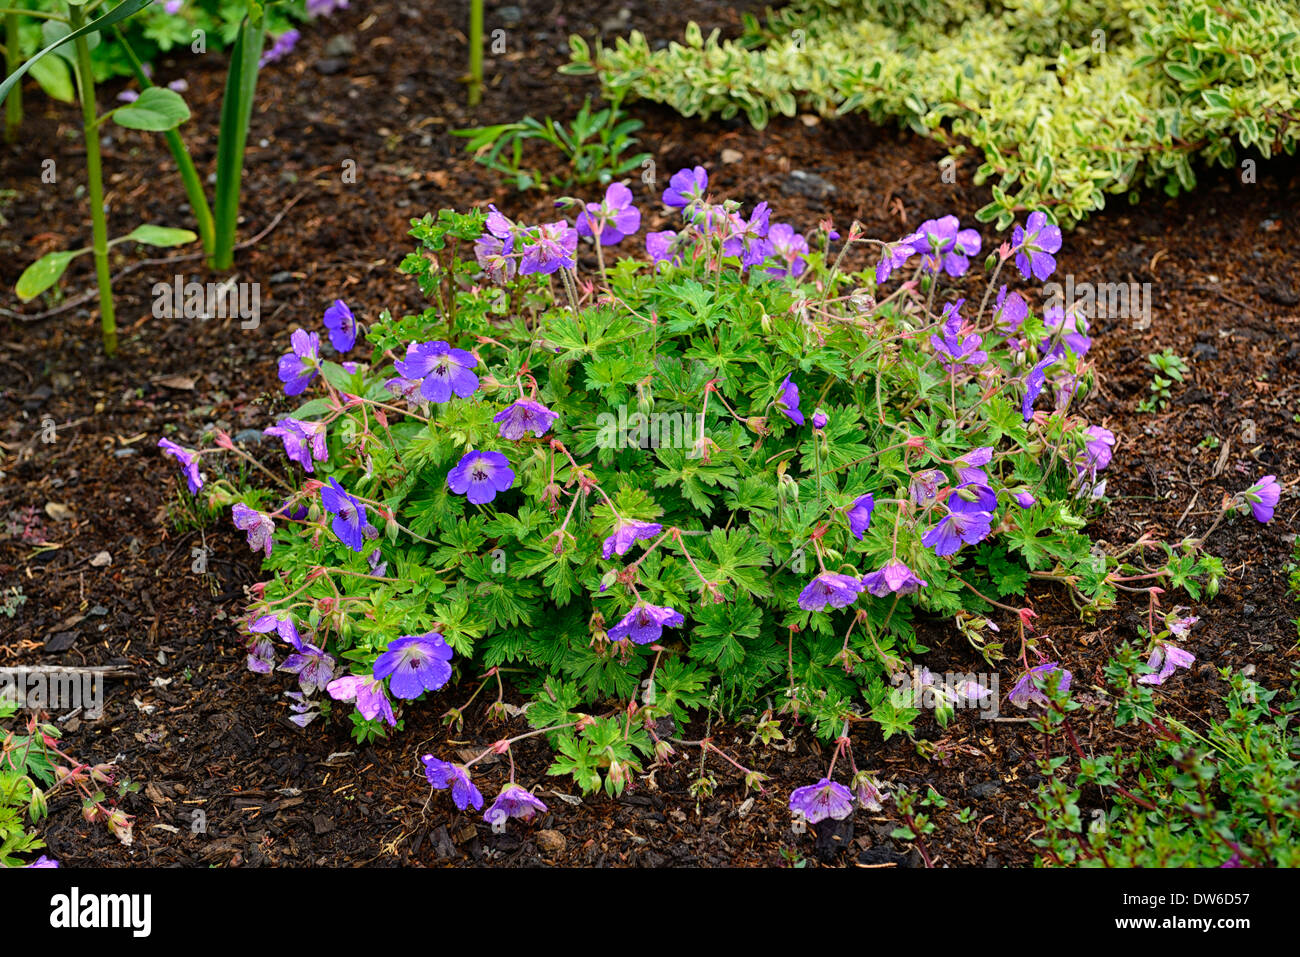 Geranium rozanne purple flowers flowering geraniums perennials stock geranium rozanne purple flowers flowering geraniums perennials groundcover cover closeups plant portraits mightylinksfo